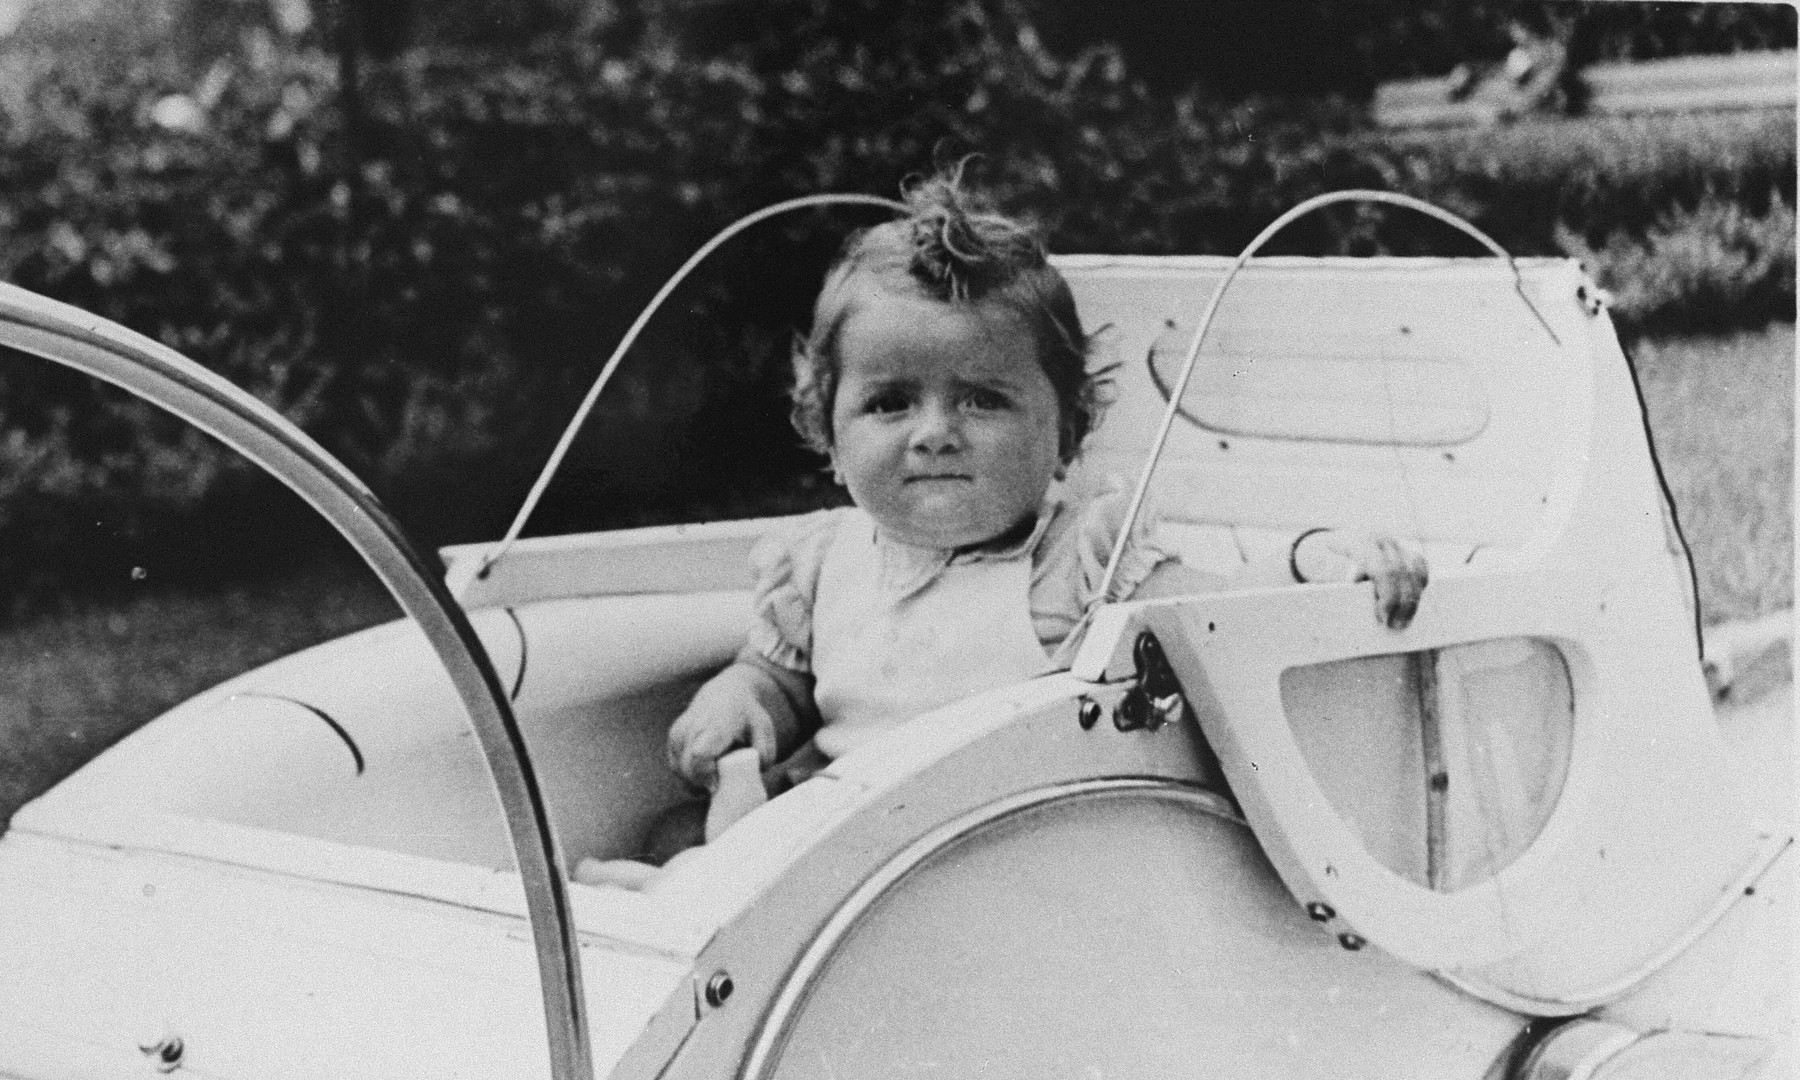 Portrait of a Jewish child sitting in a baby carriage in Zagreb, Croatia.  Pictured is Dita Klein, the daughter of Zdenko Klein and a cousin of the donor.  Dita perished during the Holocaust.